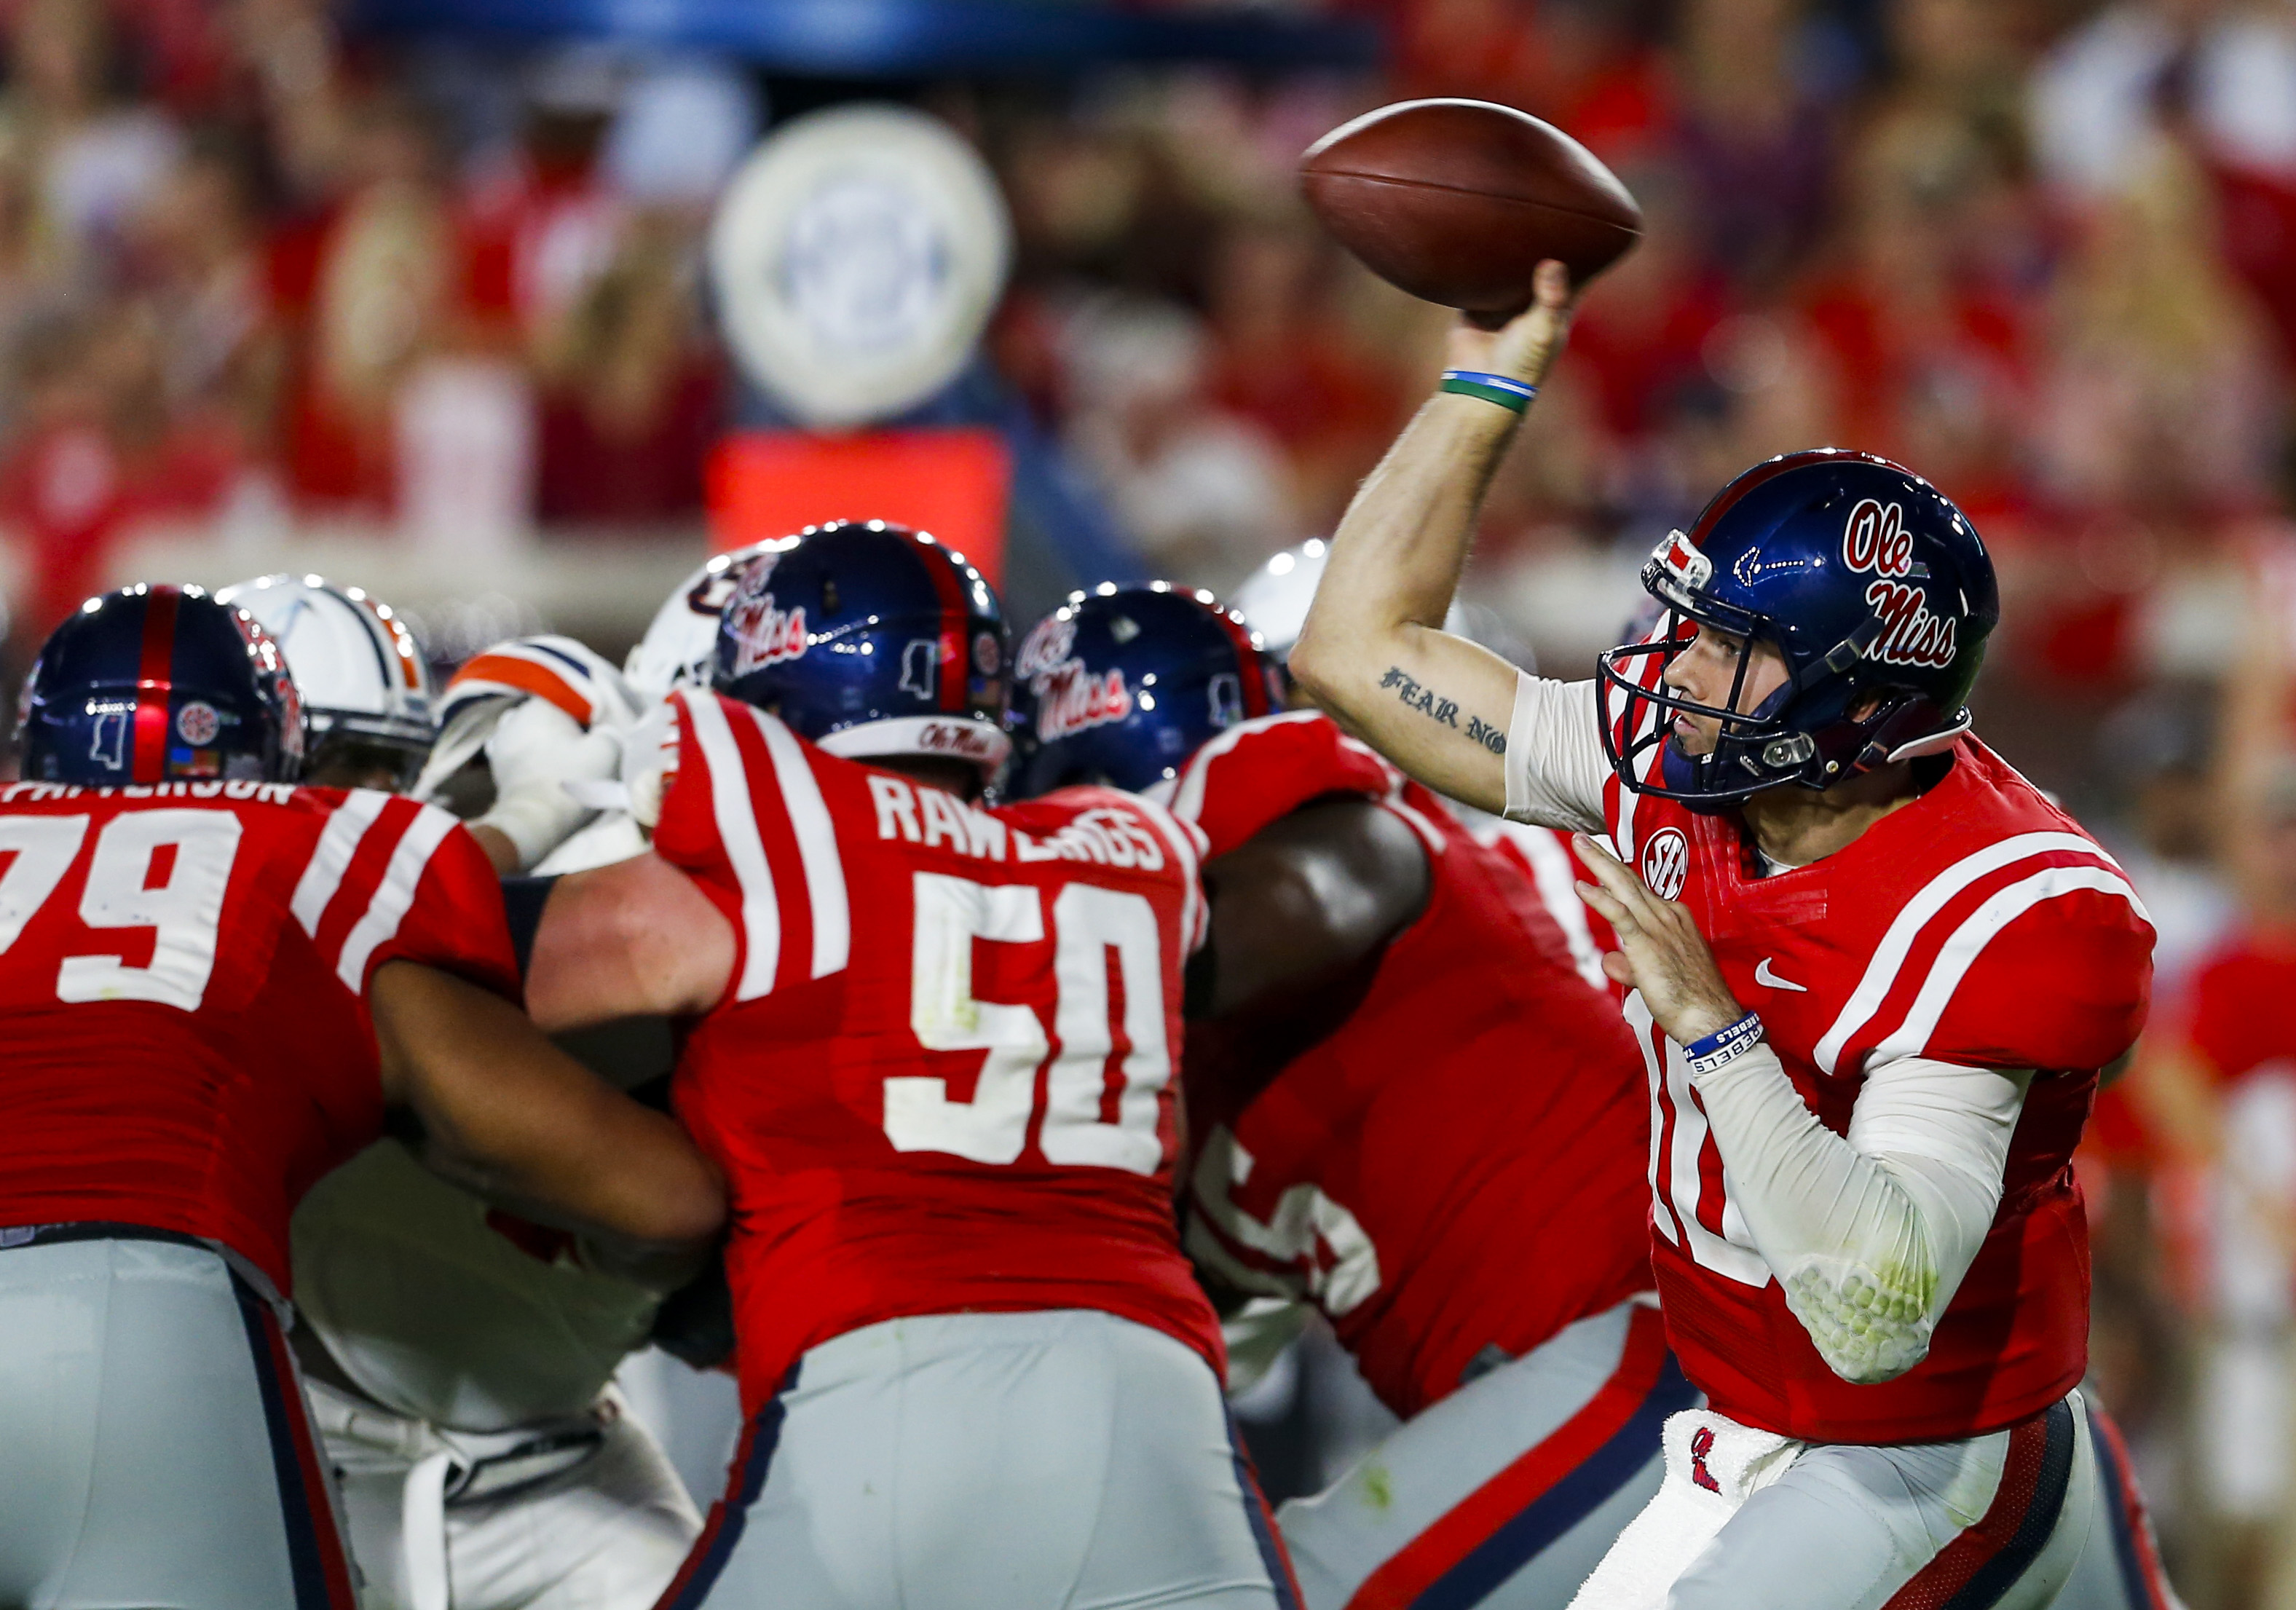 Ole Miss QB Chad Kelly had his season cut short by a knee injury. (Getty Images)